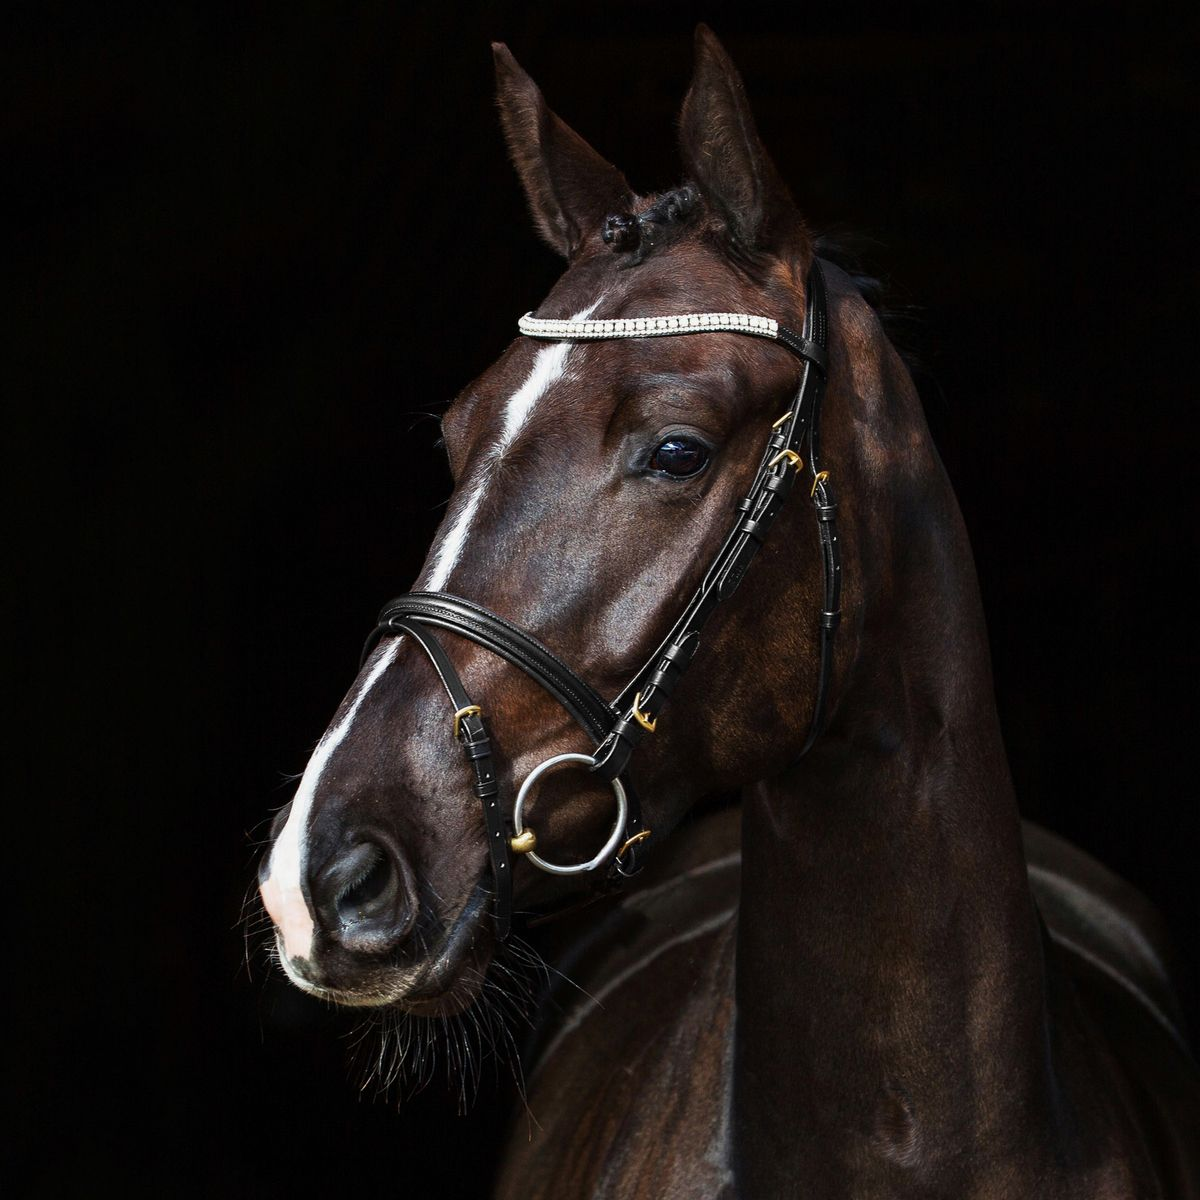 Horze-Trajan-Leather-Snaffle-Flash-Bridle-with-Narrow-Browband-and-Reins miniature 12